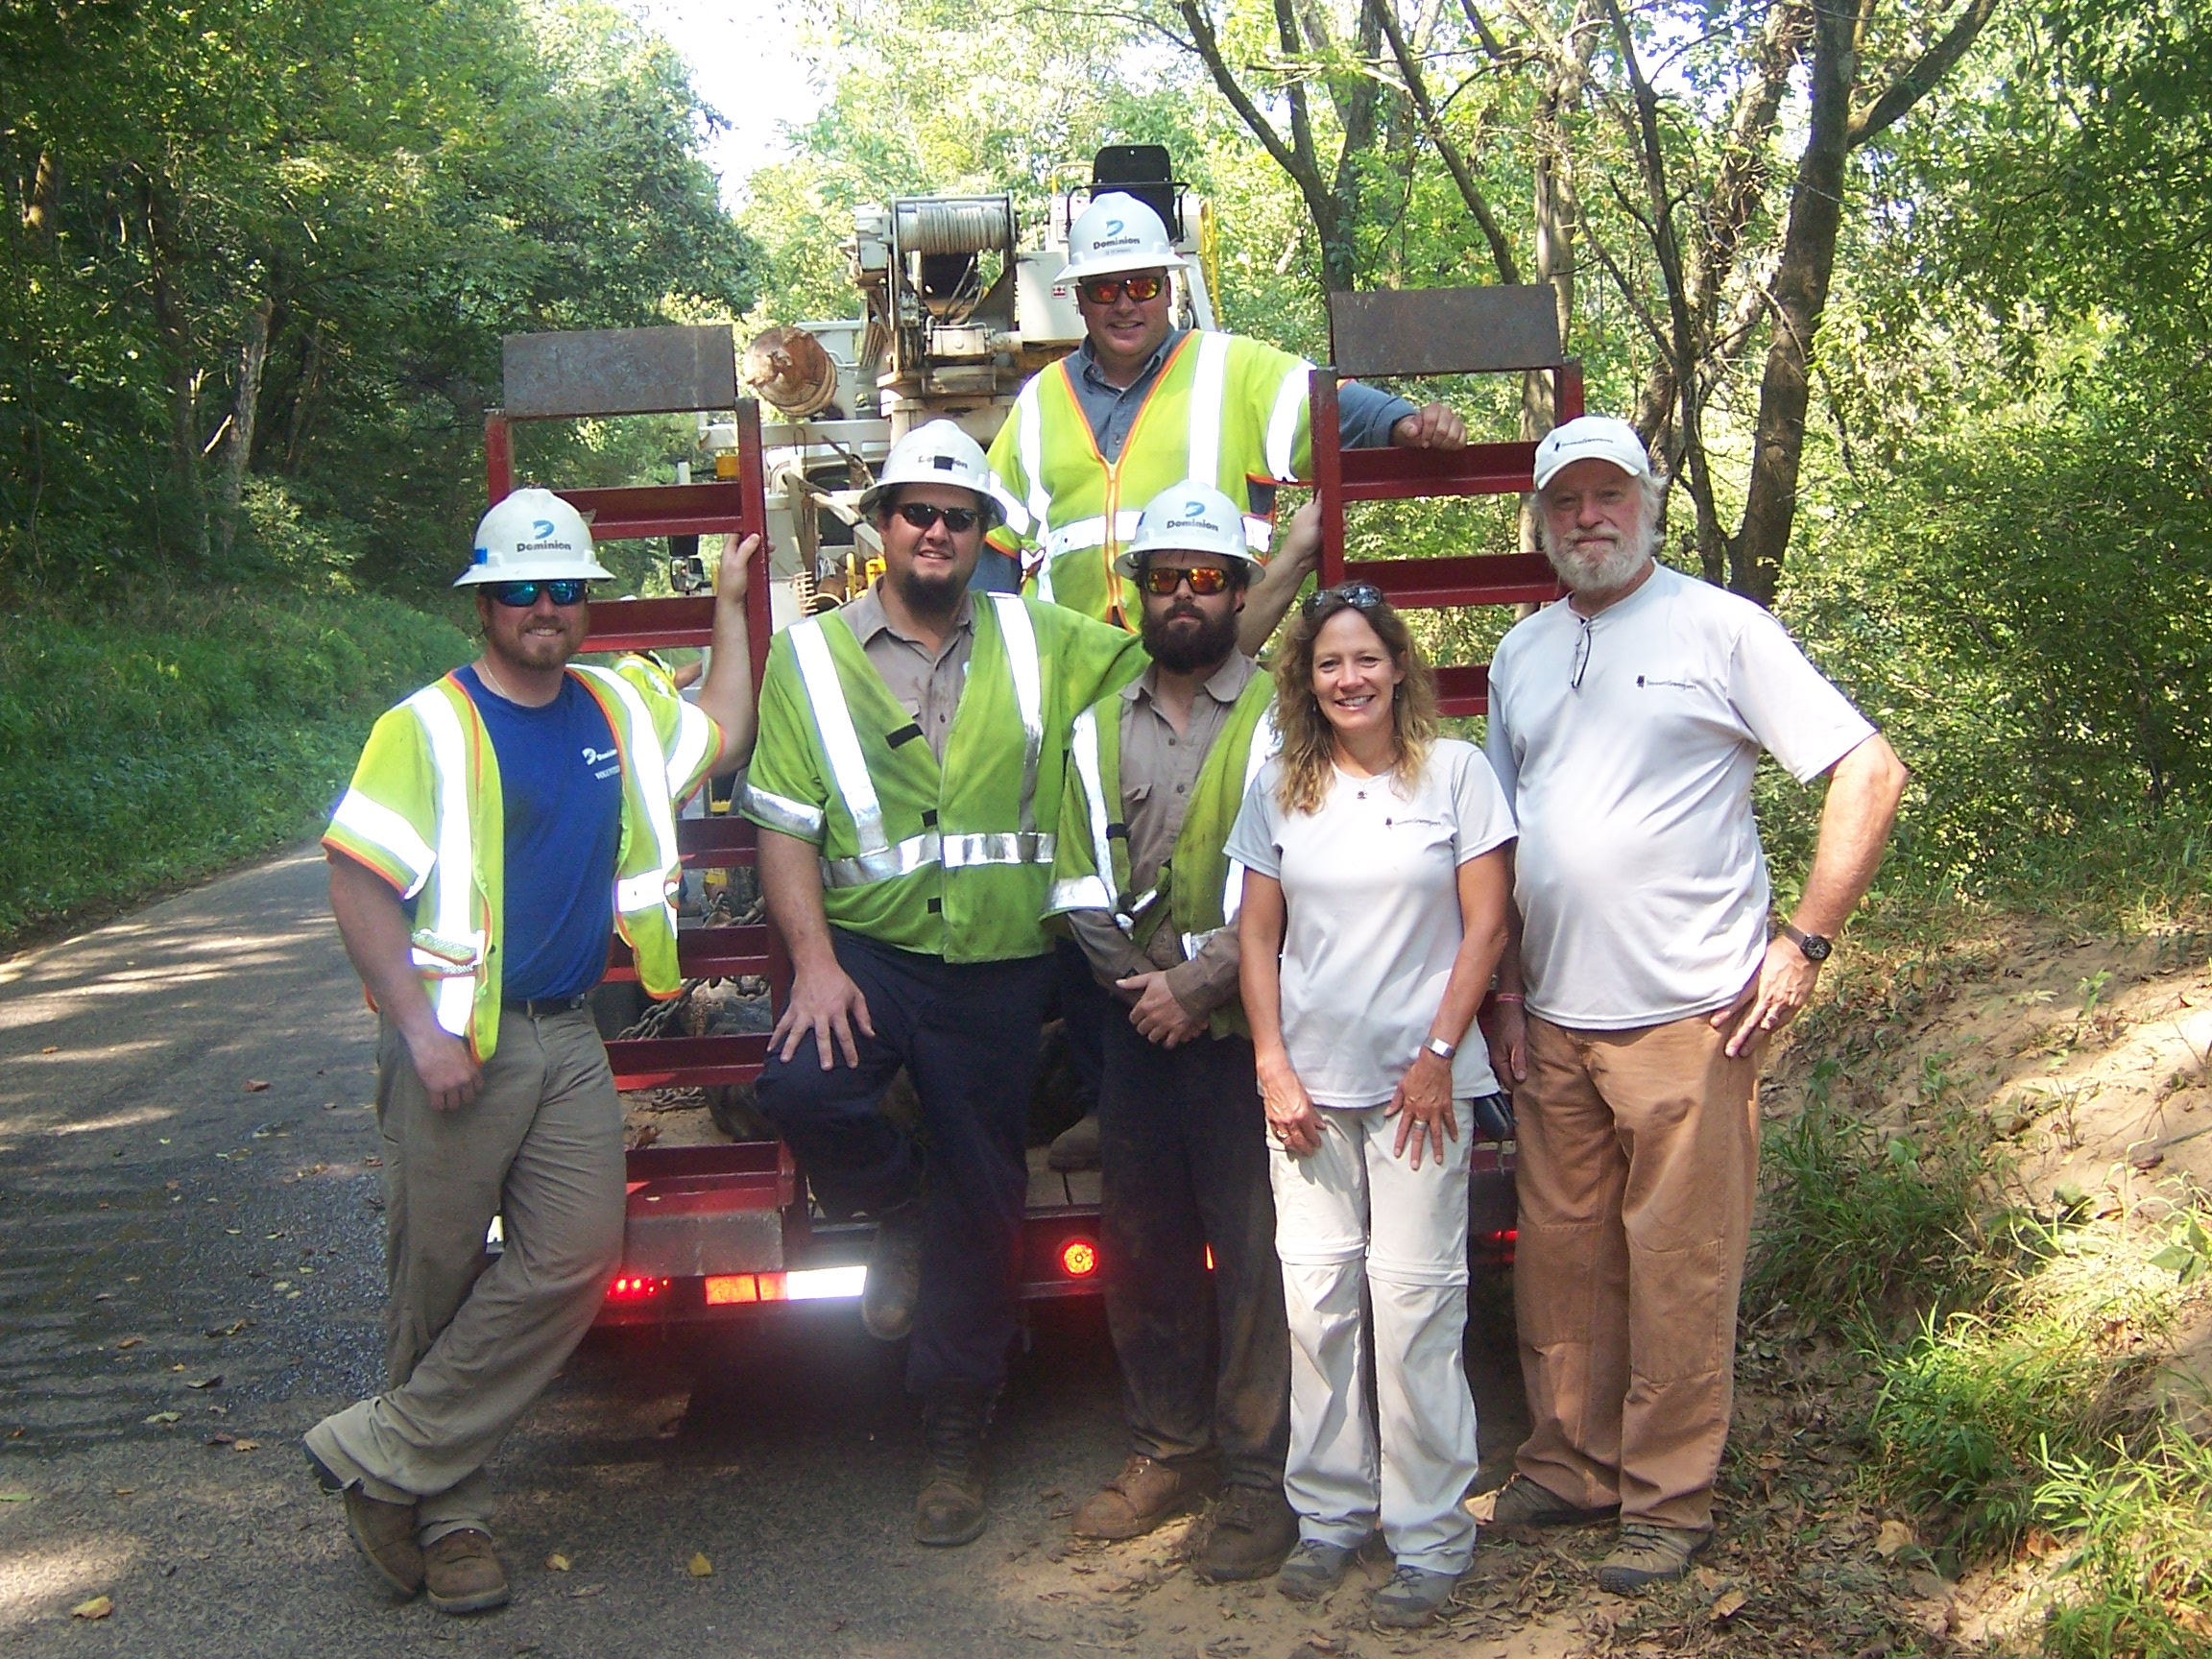 Dominion Crew based in Orange Helps StreamSweepers